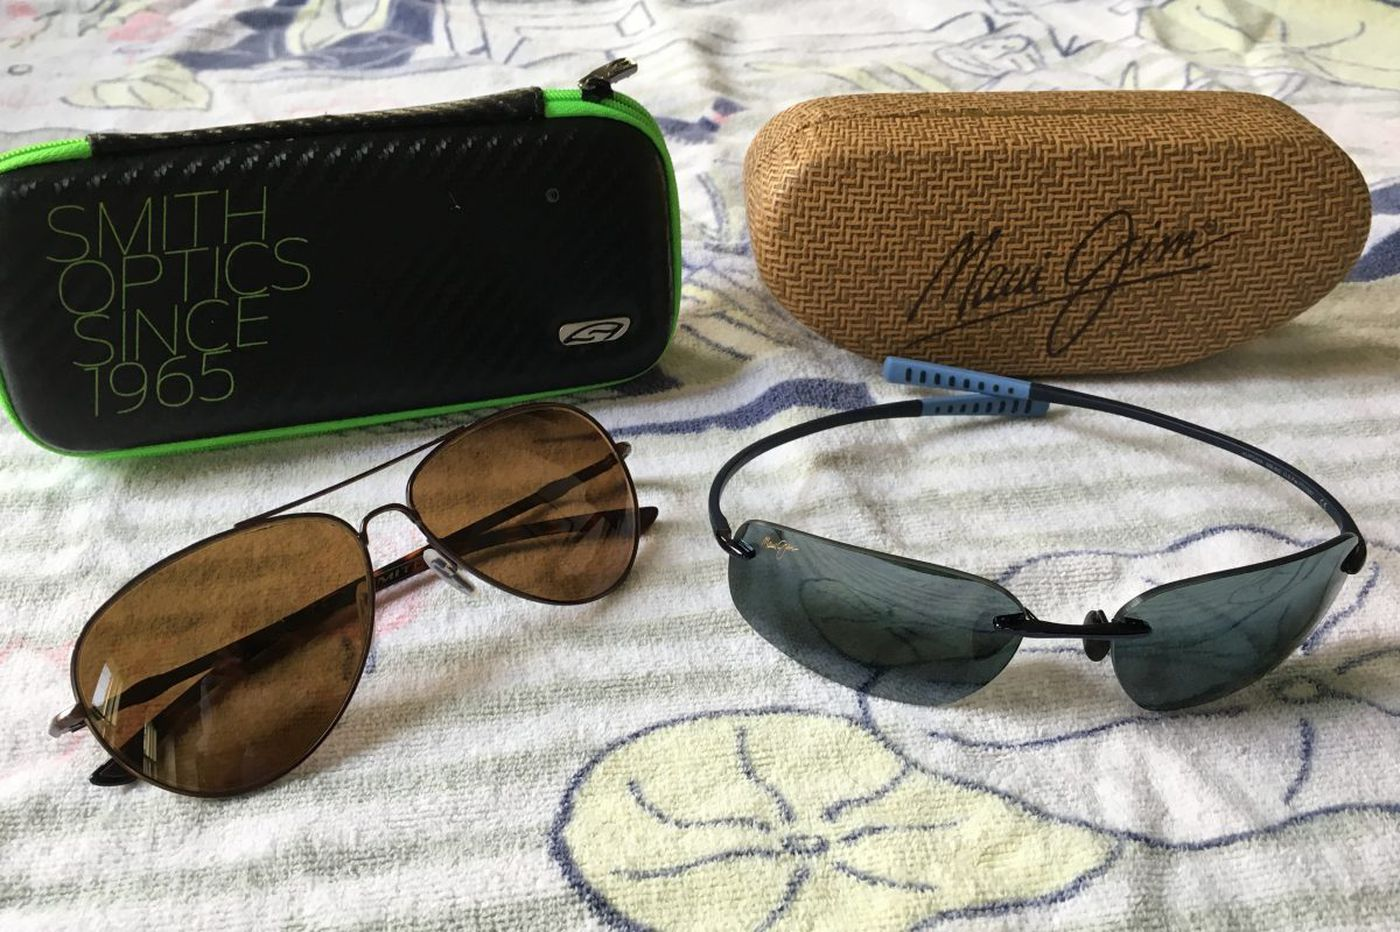 Zero Water, SmithOptics and myrocknrolla have cool gadgets for summer